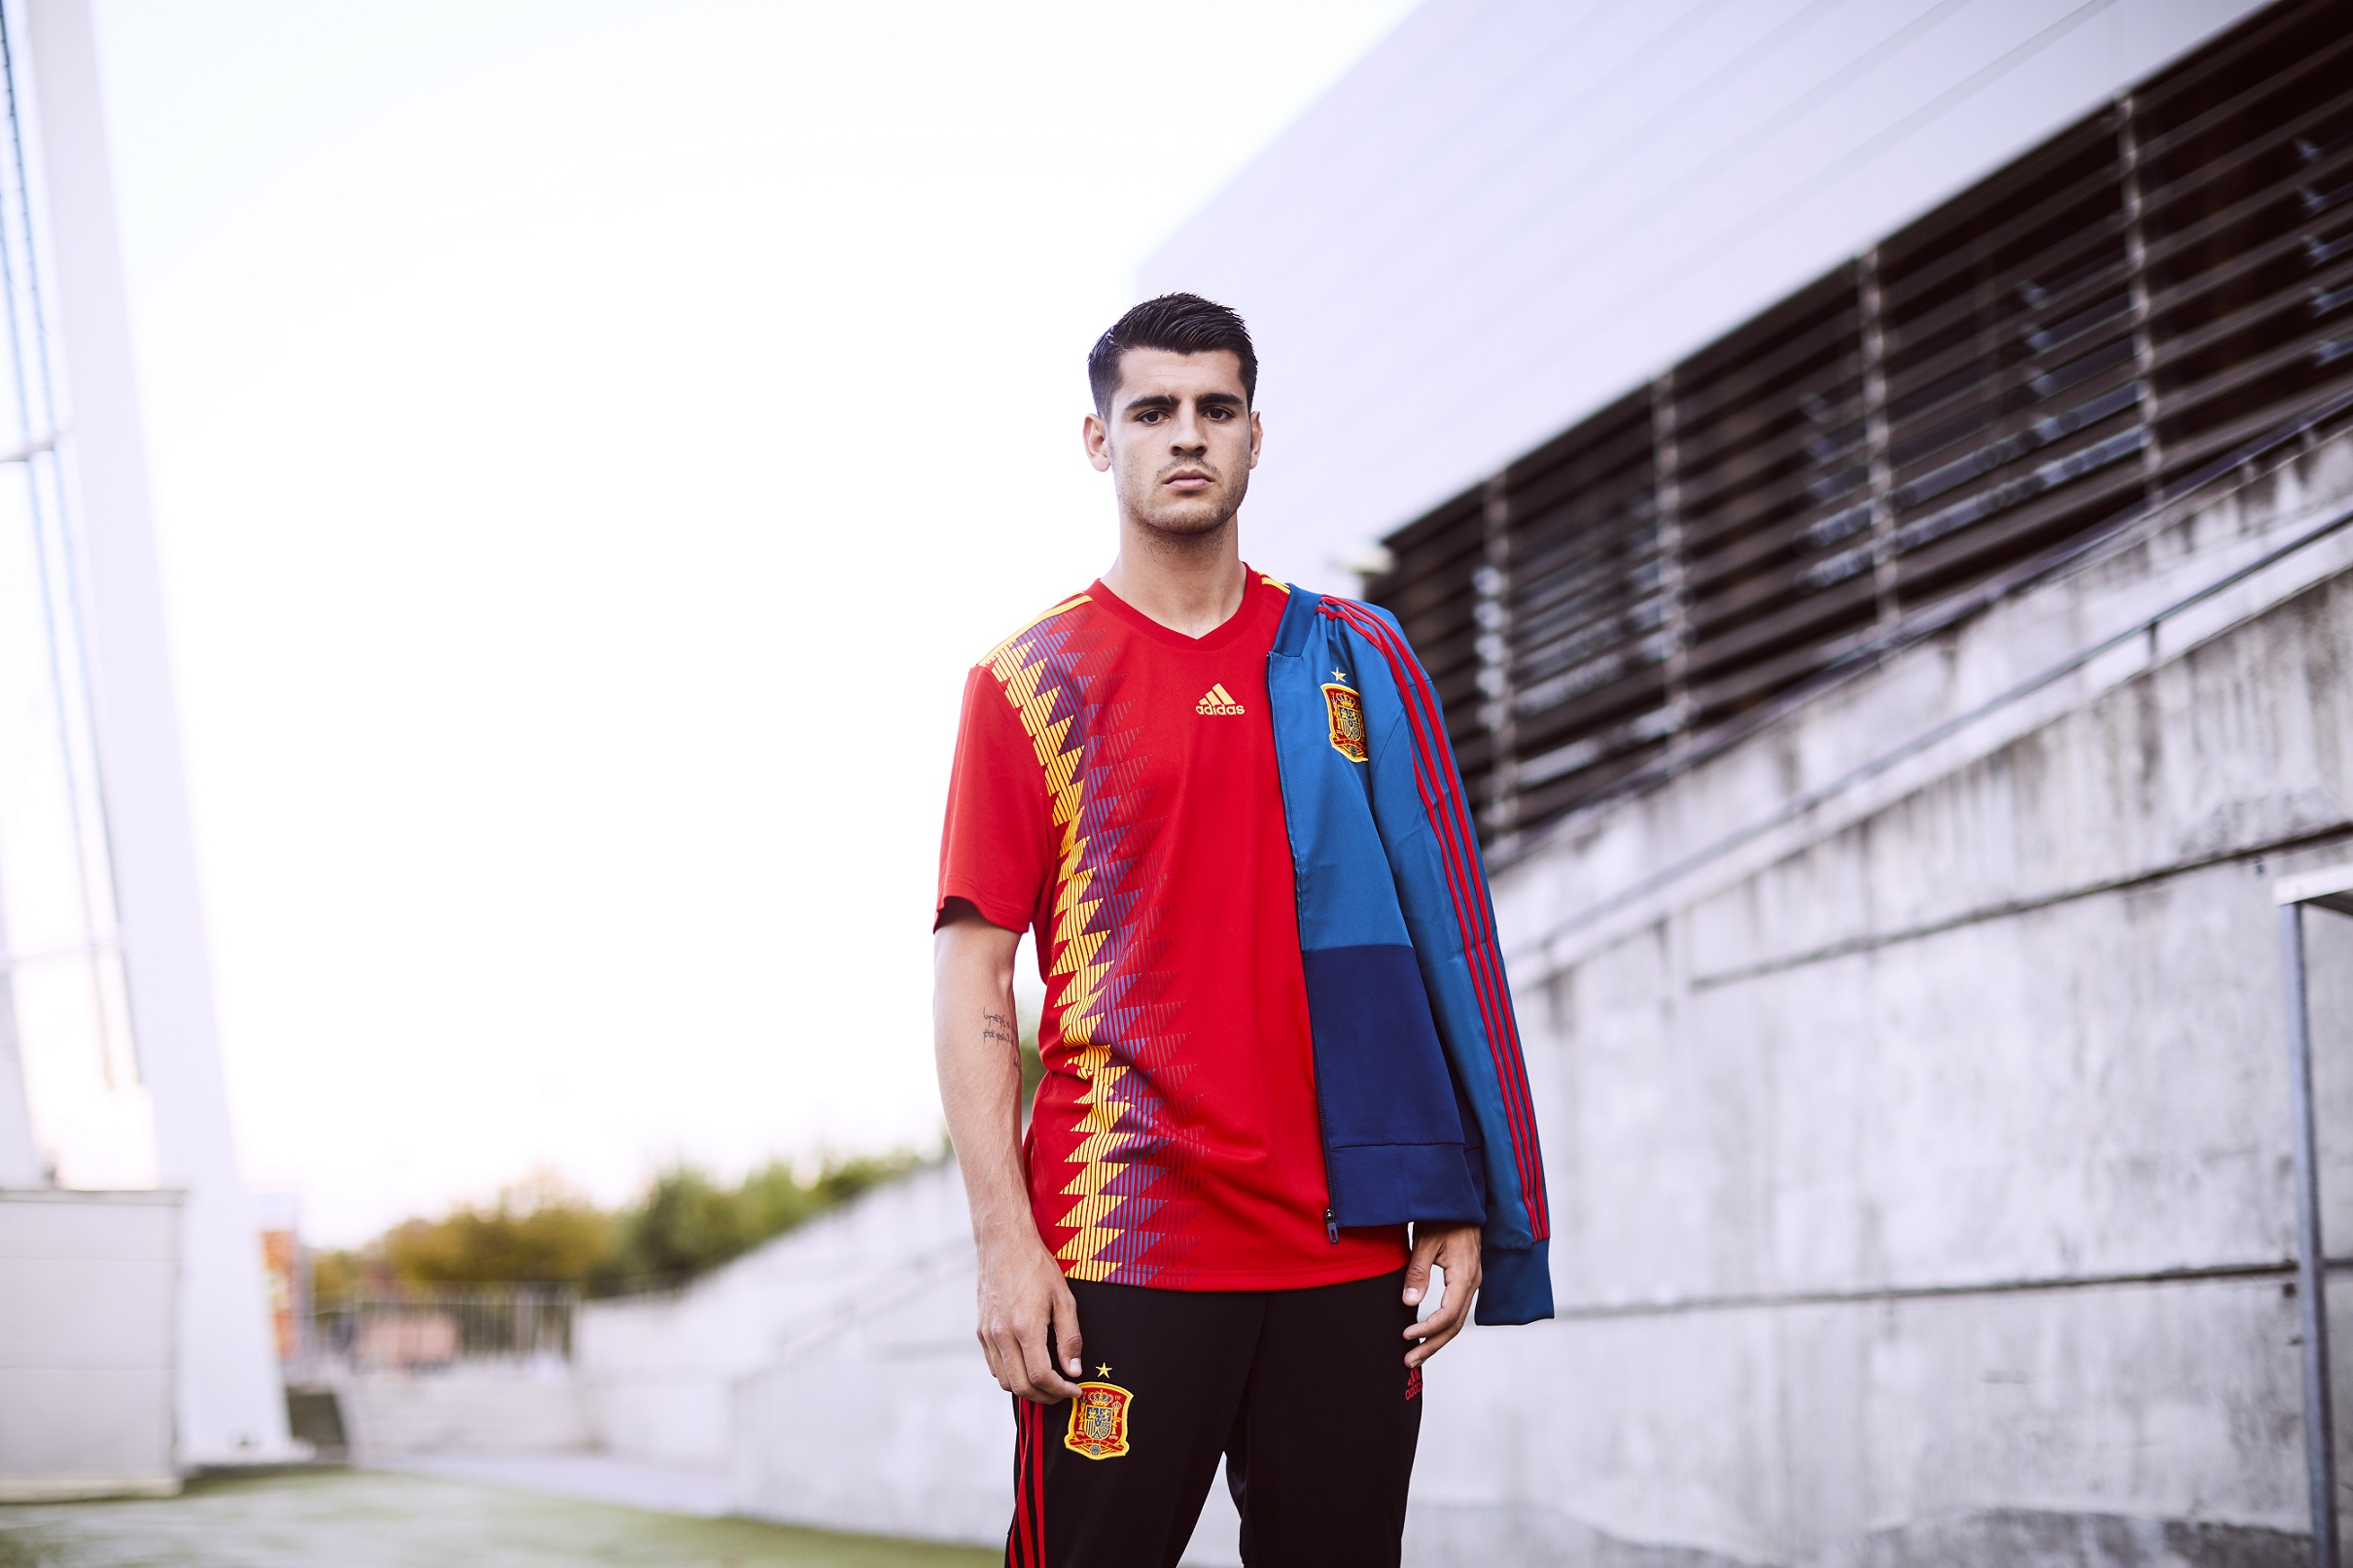 Spain's home shirt for the 2018 World Cup in Russia